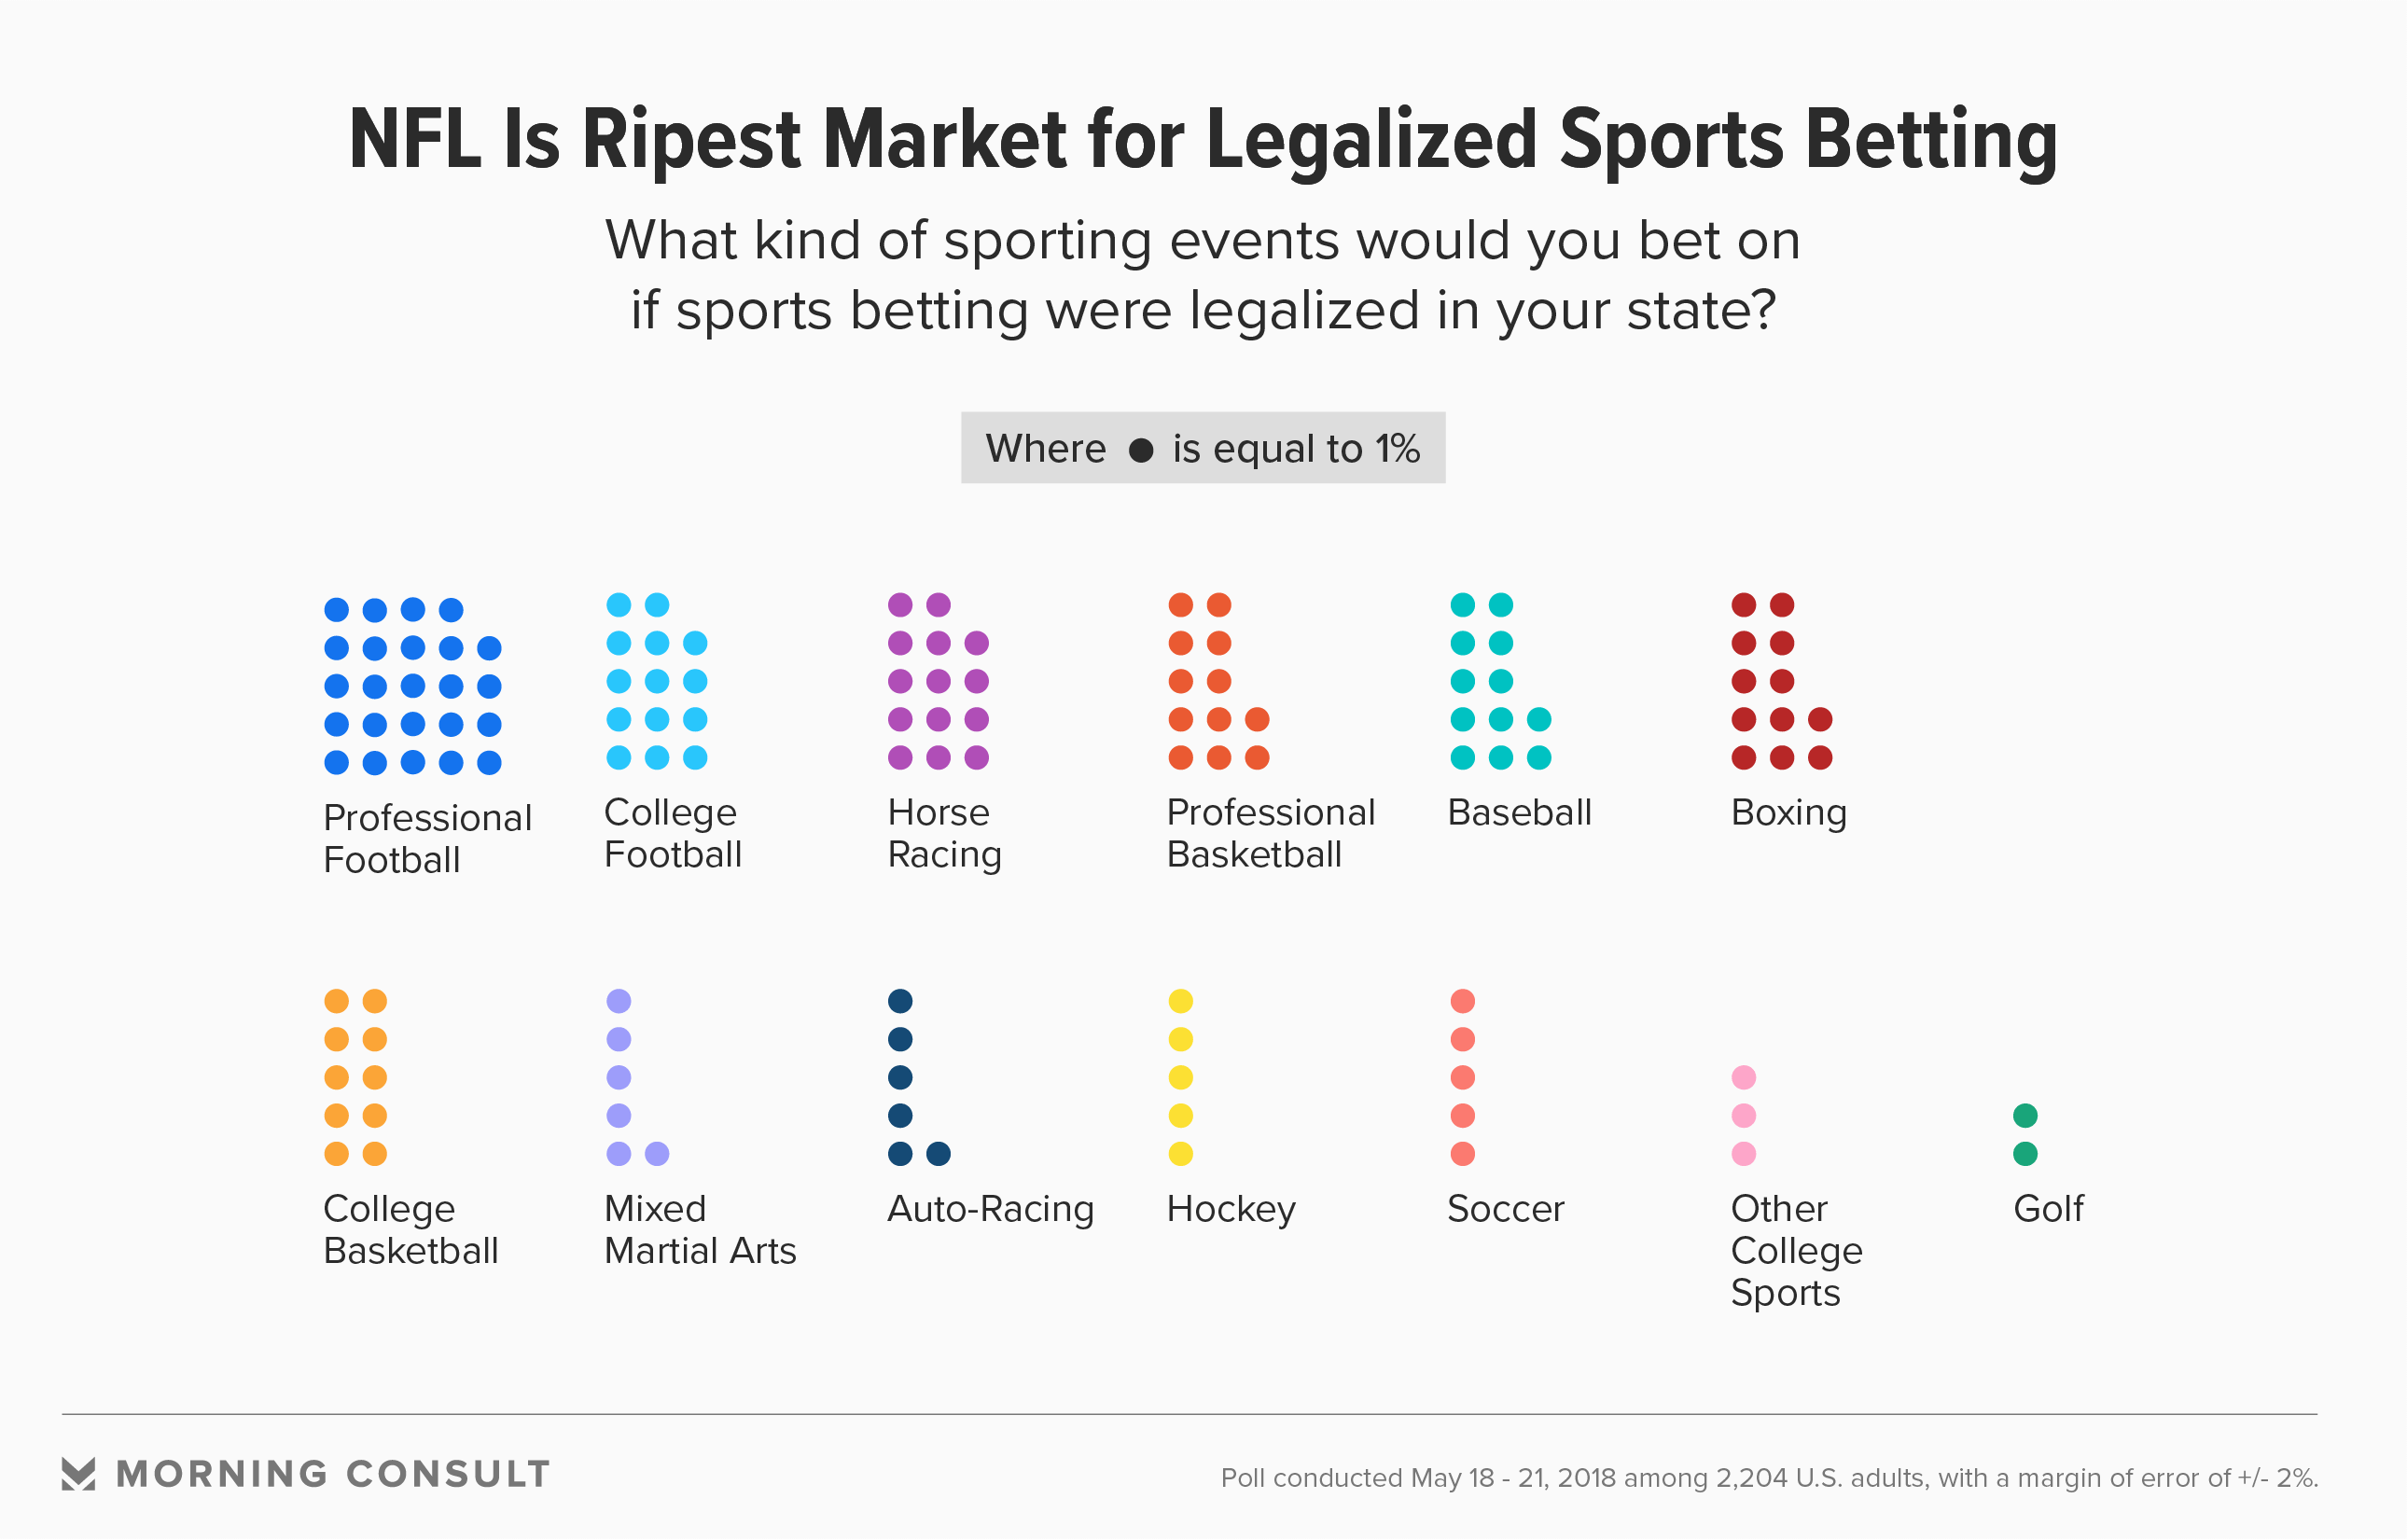 NFL is ripest market for legalized sports betting (morningconsult)